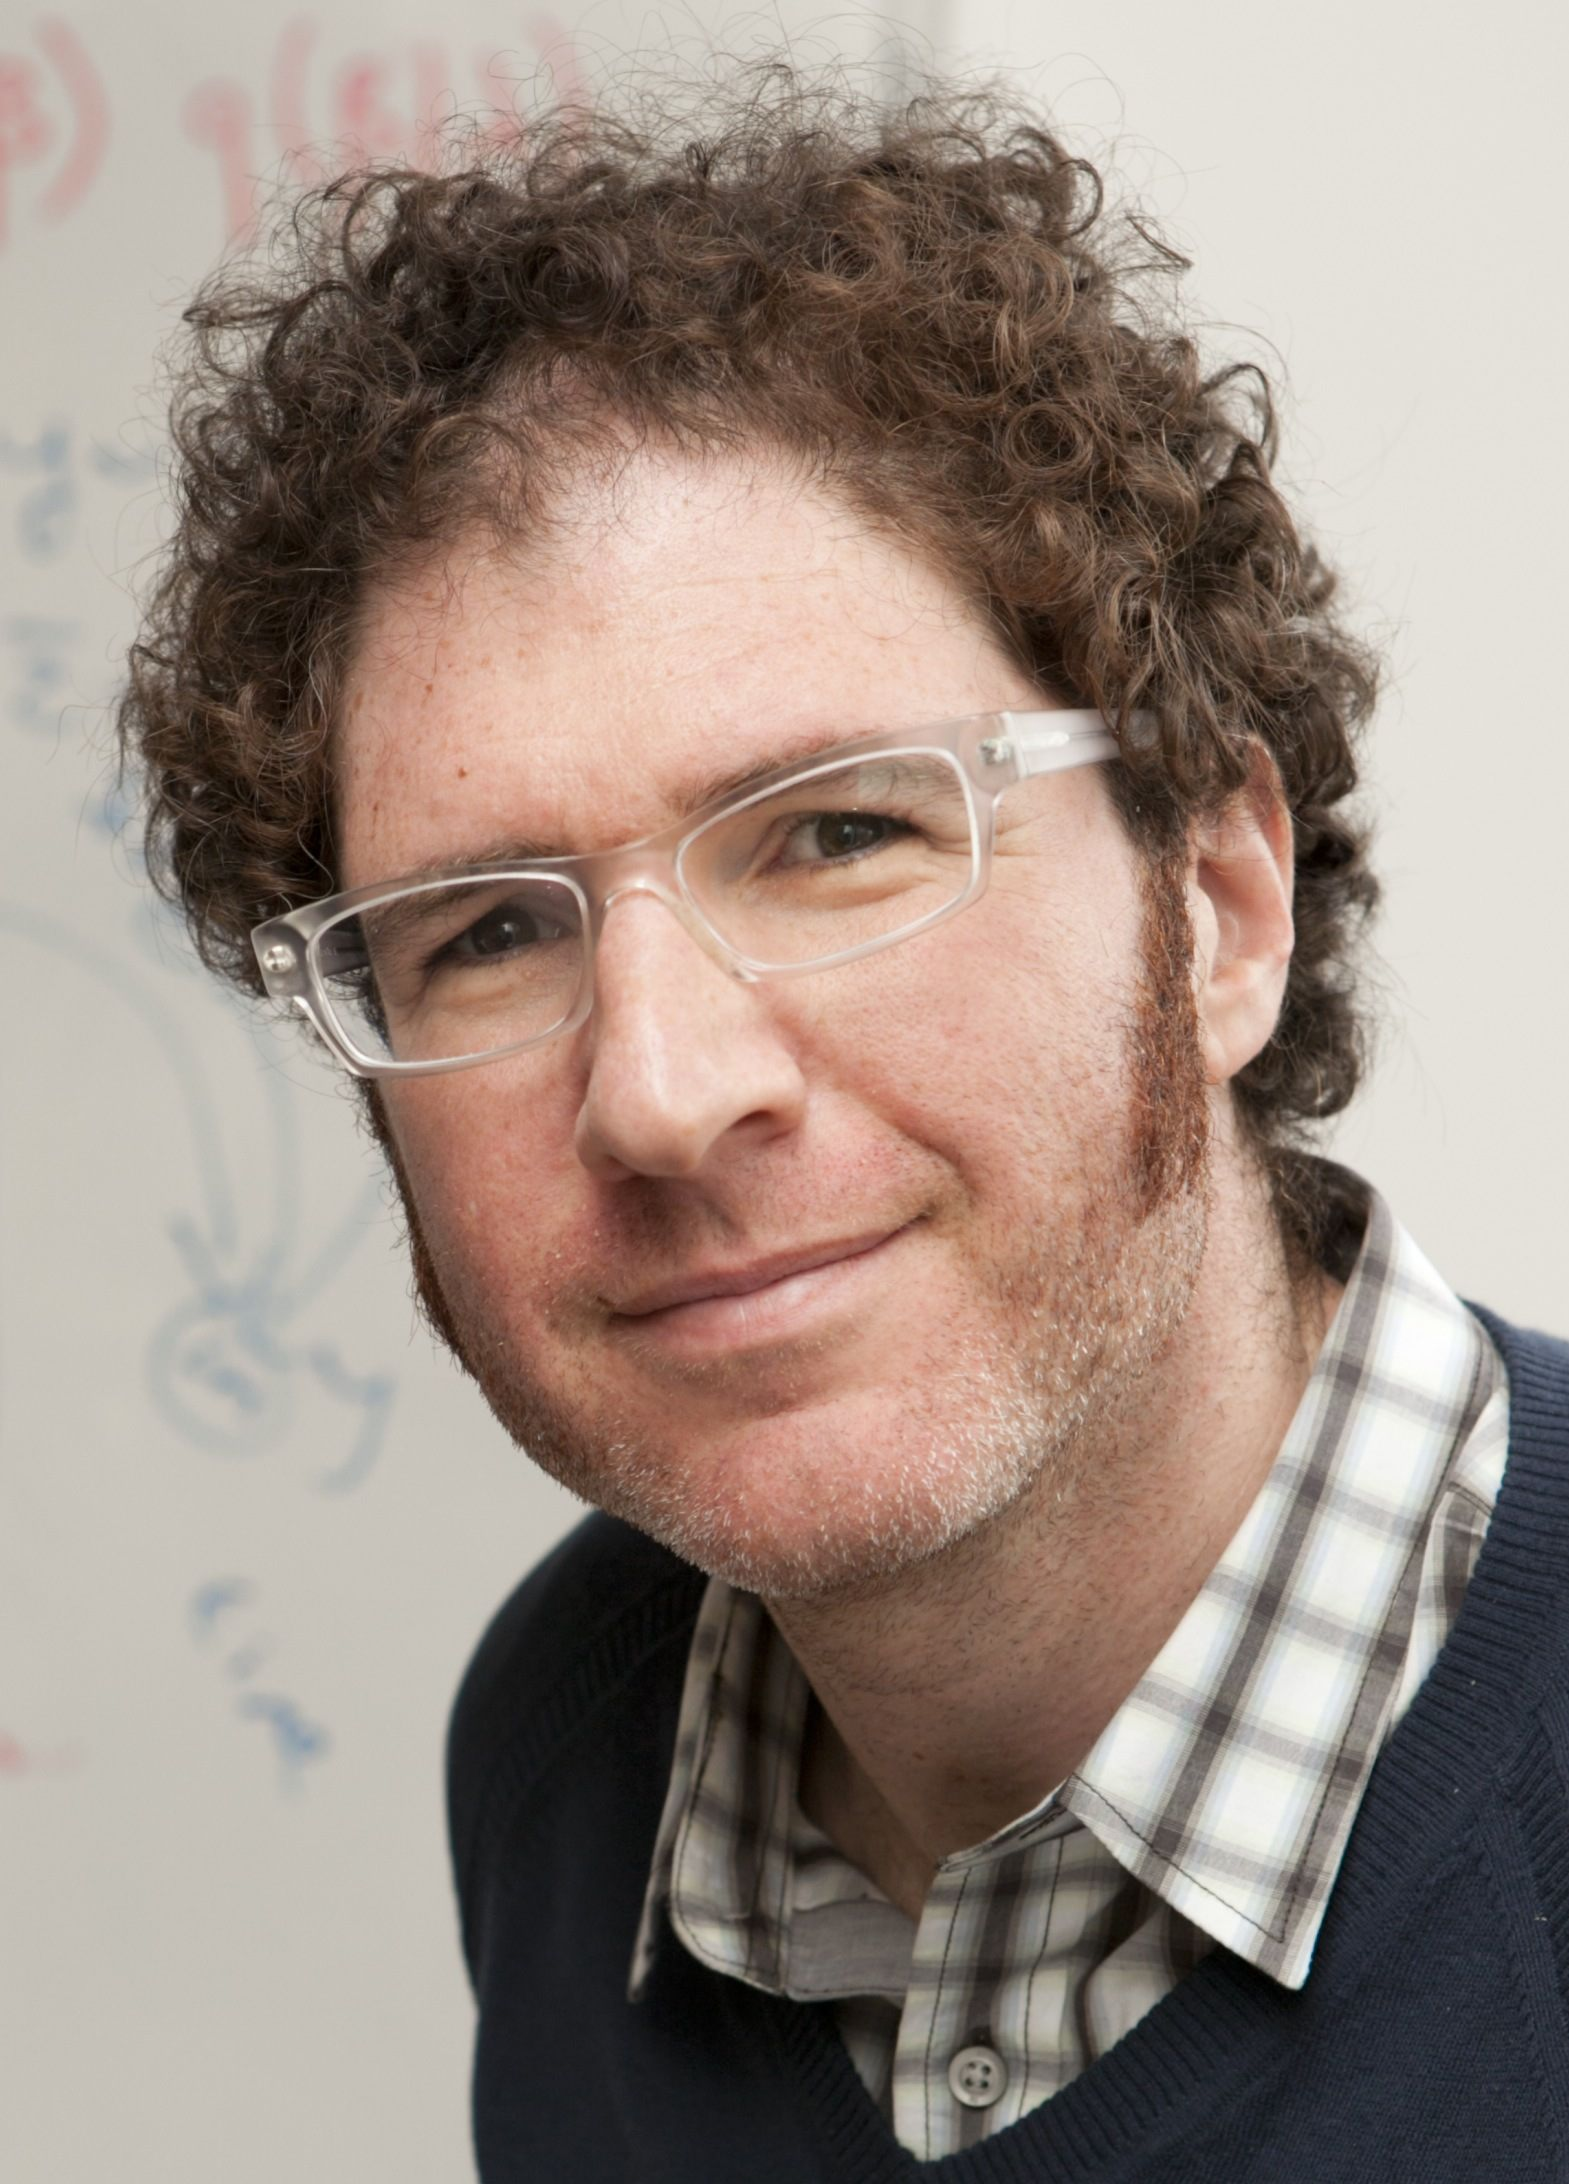 David Blei was named co-editor-in-chief at the Journal of Machine Learning Research (JMLR).